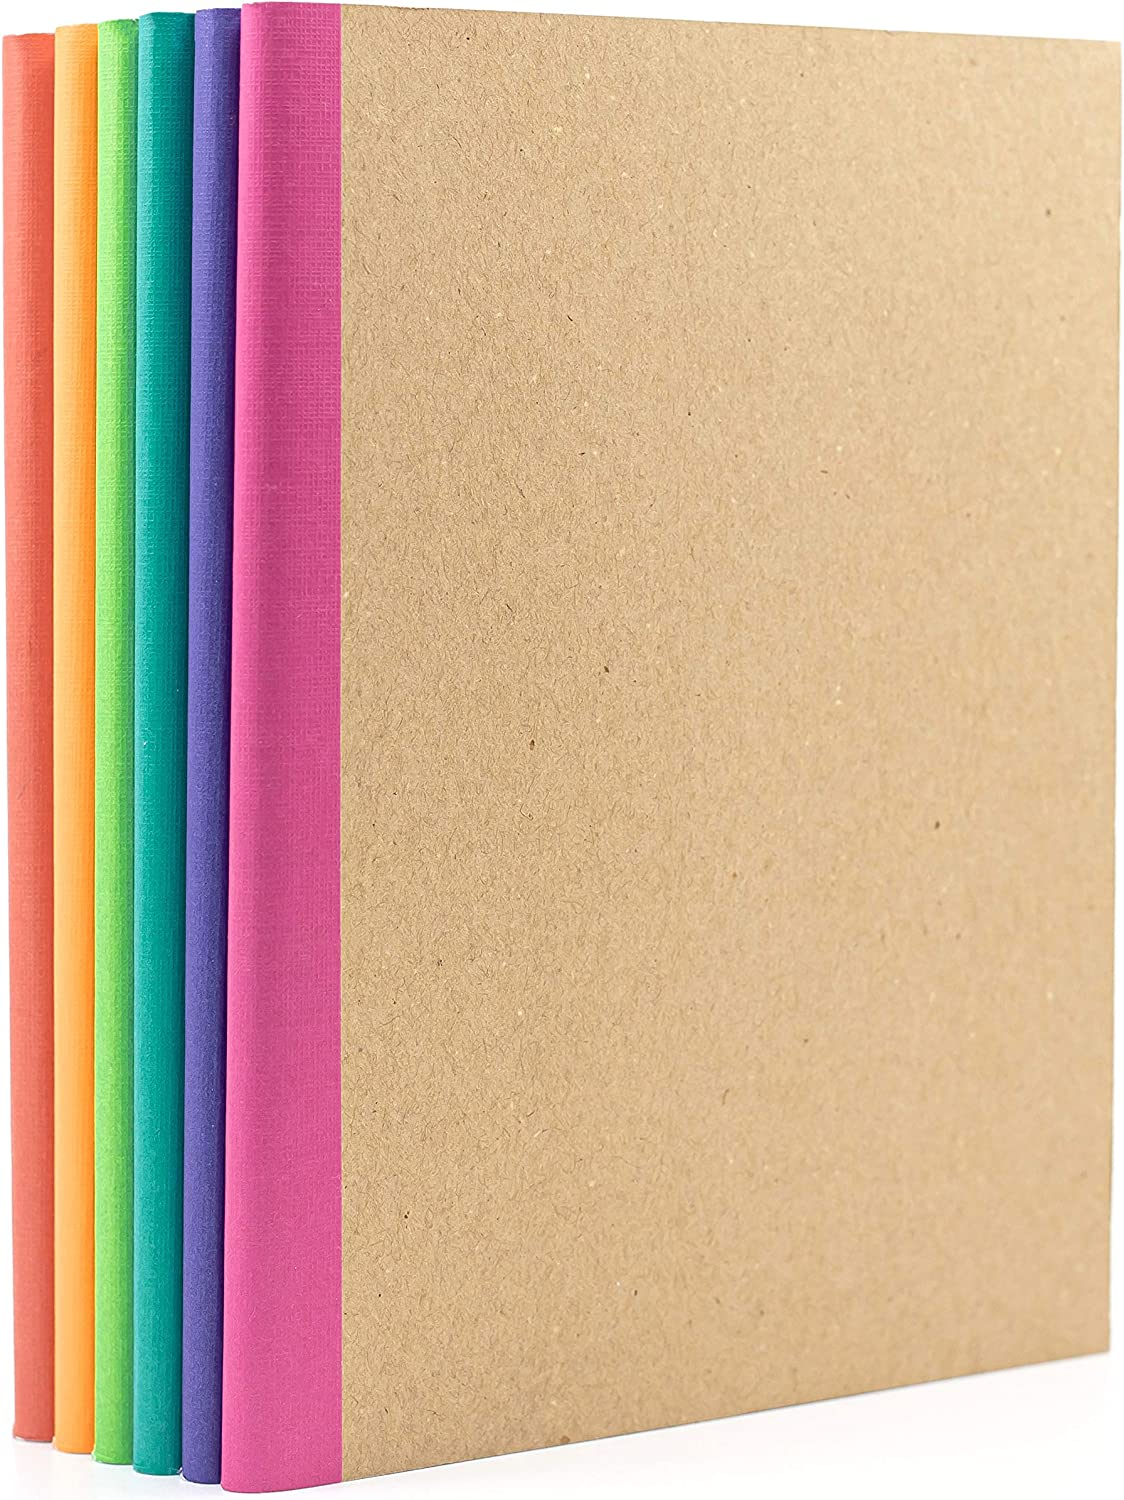 6-Pack Kraft Composition Notebooks Journals for Travelers, Students and Office, 120 gsm, 60 Pages Lined Paper, 5.75 in by 8 in